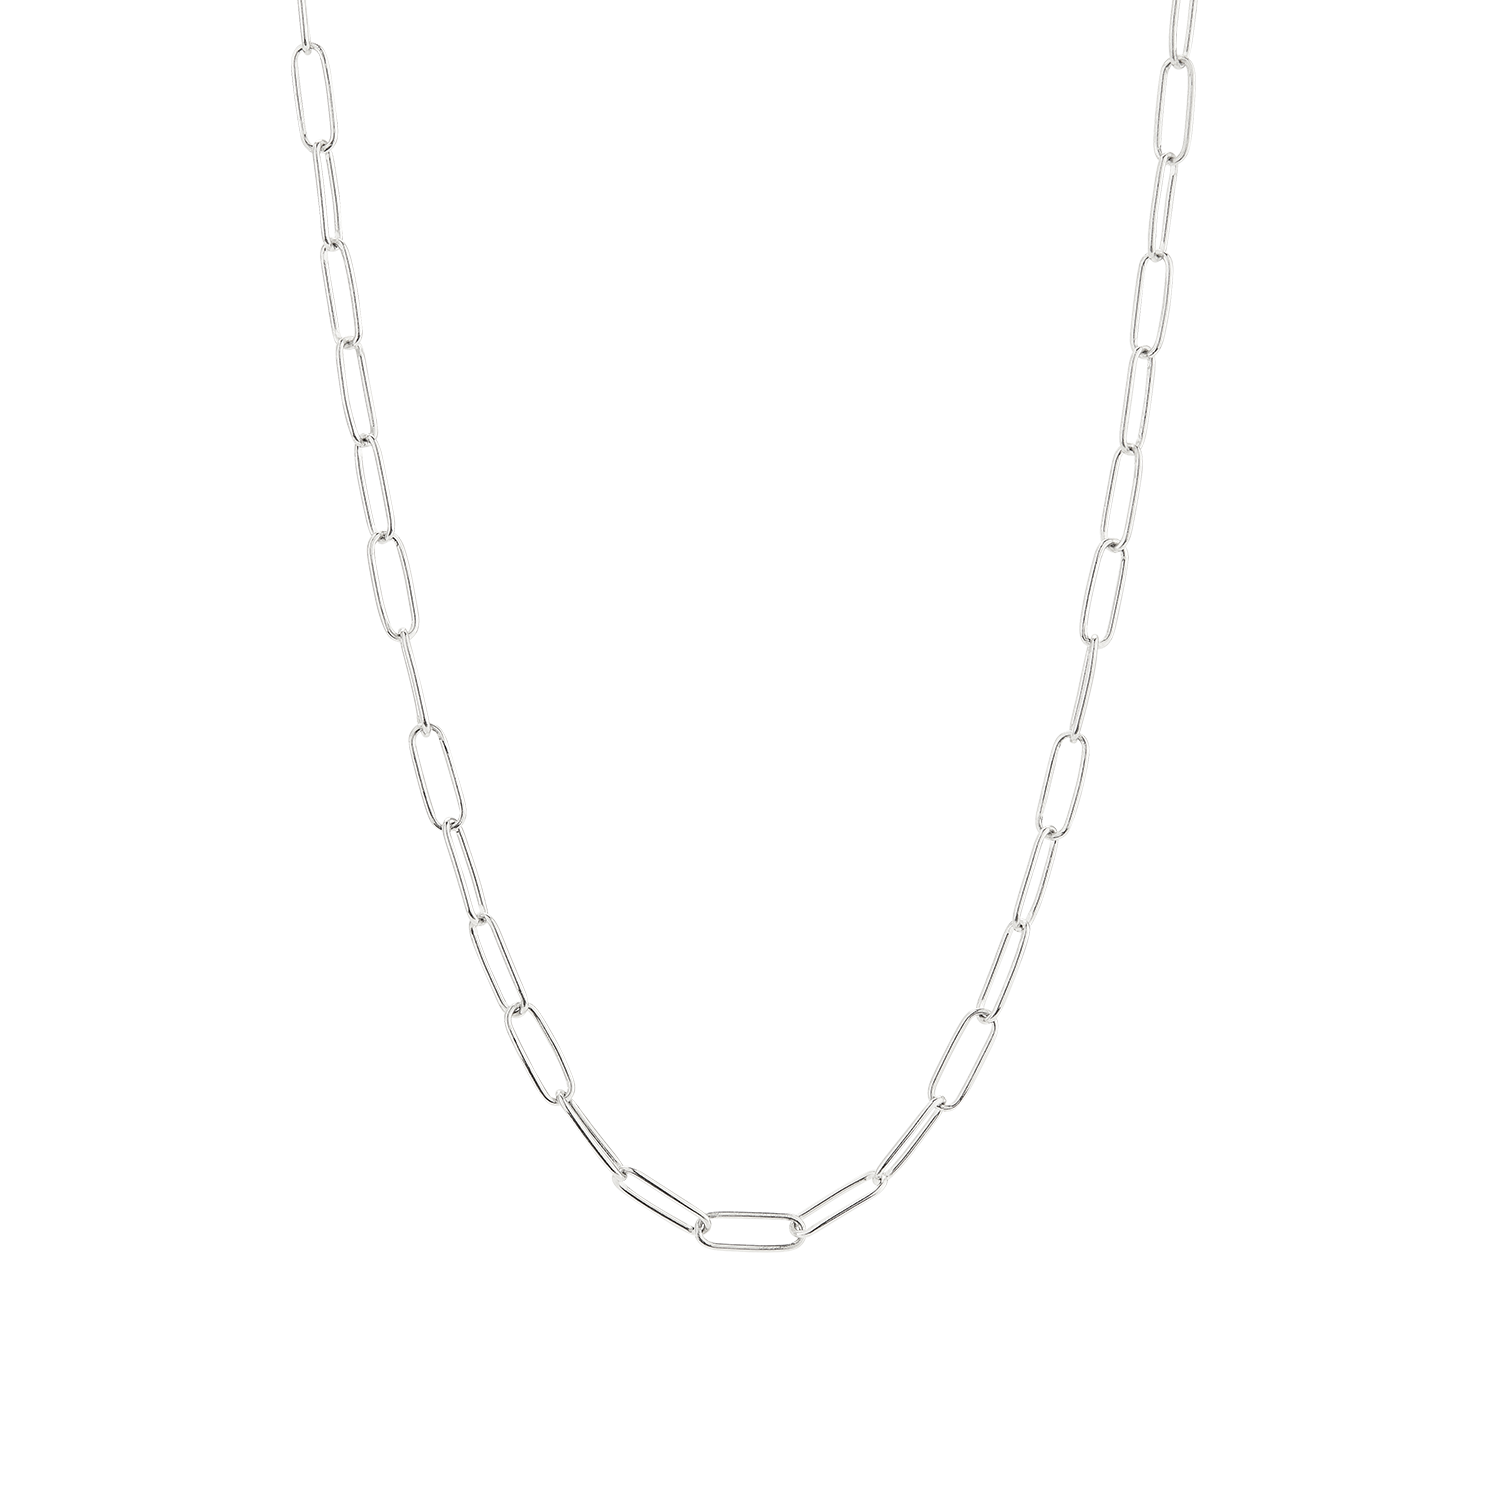 Bold Link Chain Necklace Silver Chain Link Necklace Silver Chain Necklace Silver Necklaces